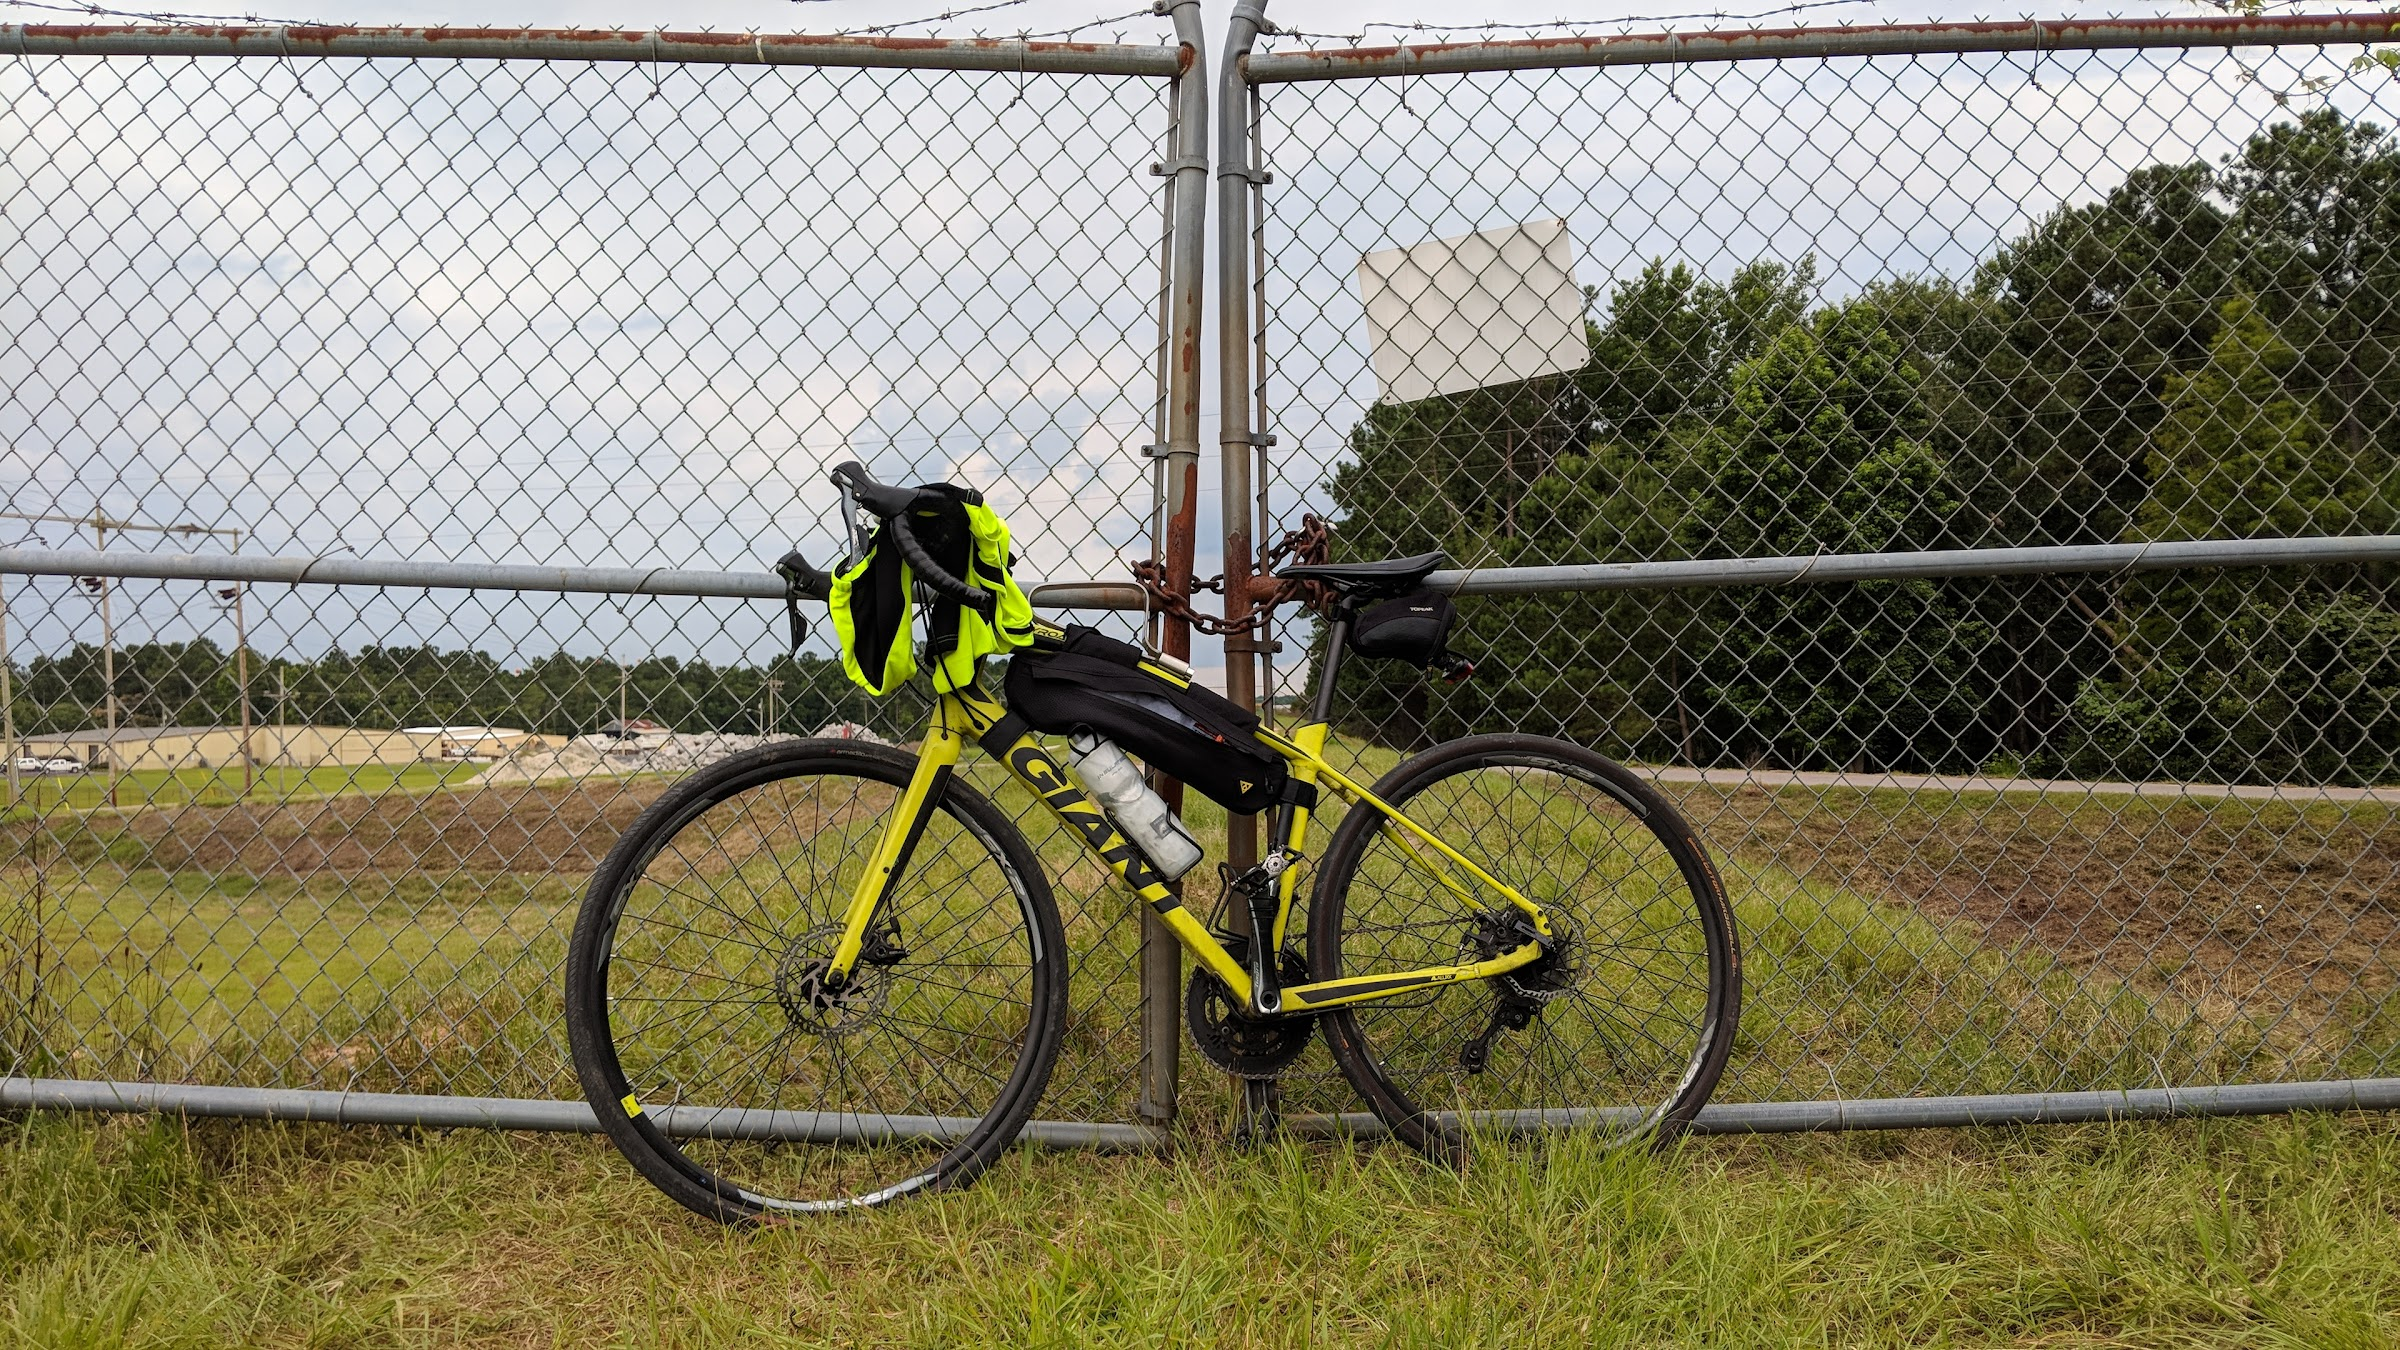 Giant Anyroad 1 bicycle leaning against lake Moultrie dike gate